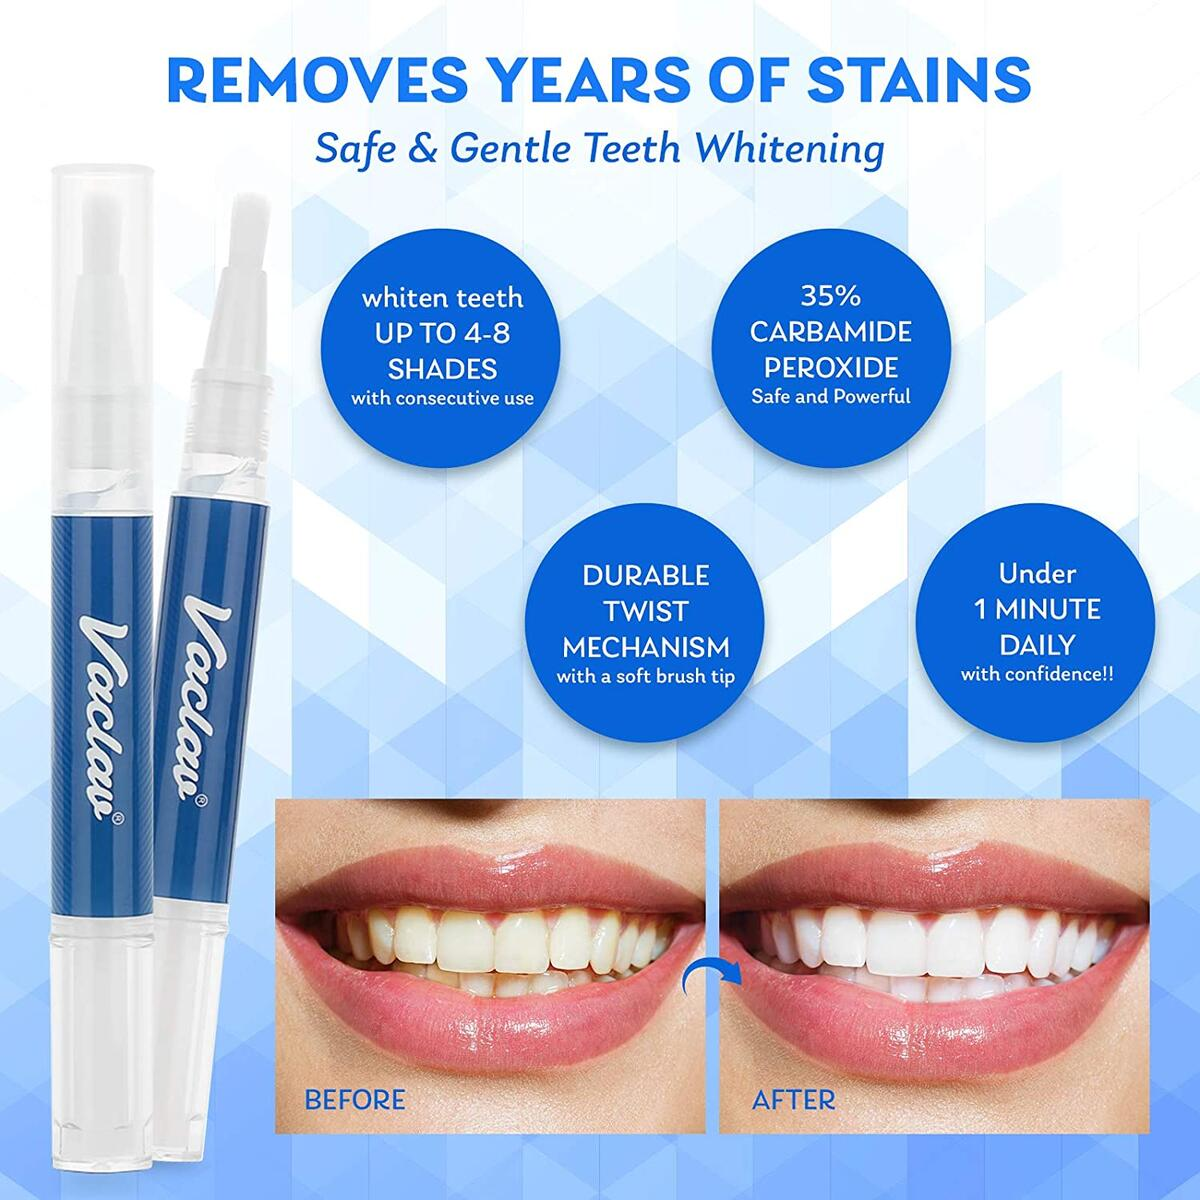 Beri Teeth Whitening Pen, Effective Painless Upgraded Formula, Contains 3ml Whitening Gel, Up to 25 Uses, Bright Smile in Minutes, Mint Flavor (2 Pcs)